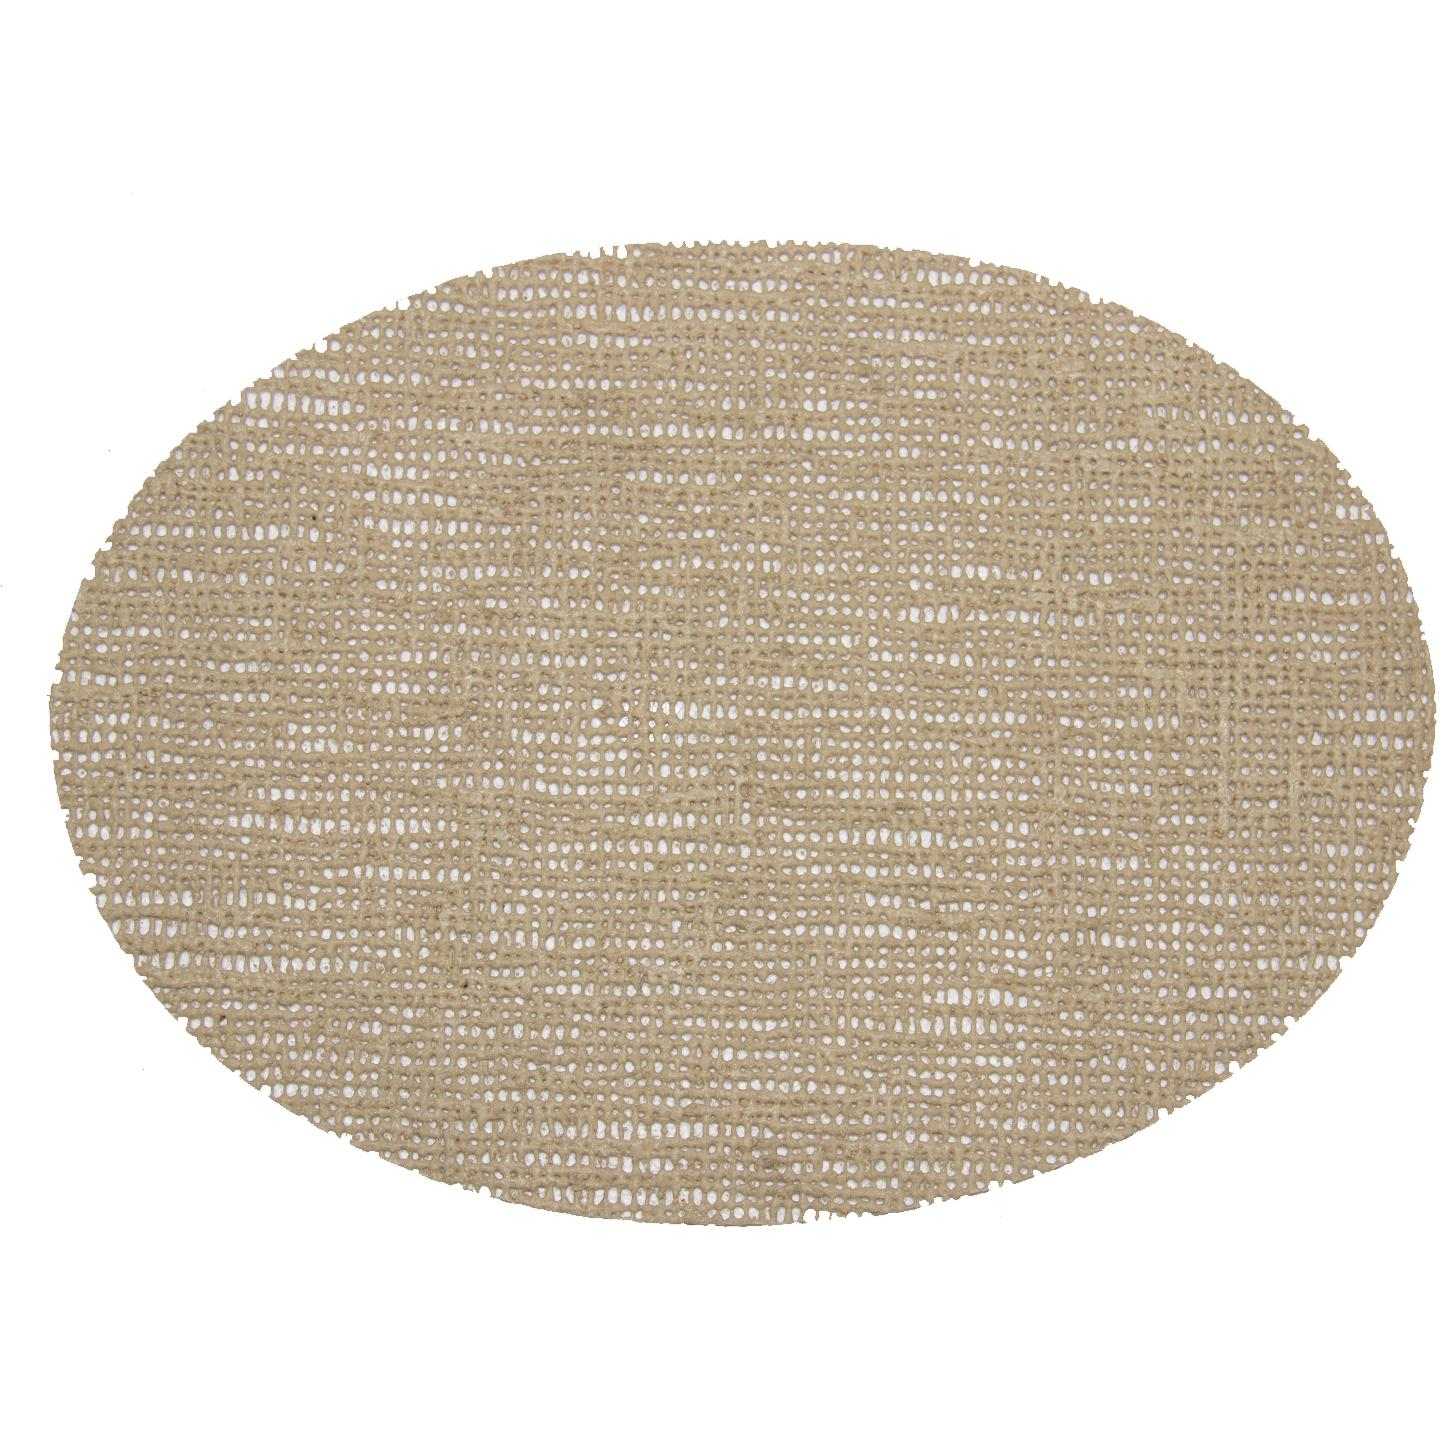 Picture of Fishnet Placemats 18 X 13 Oval Placemat - Beige